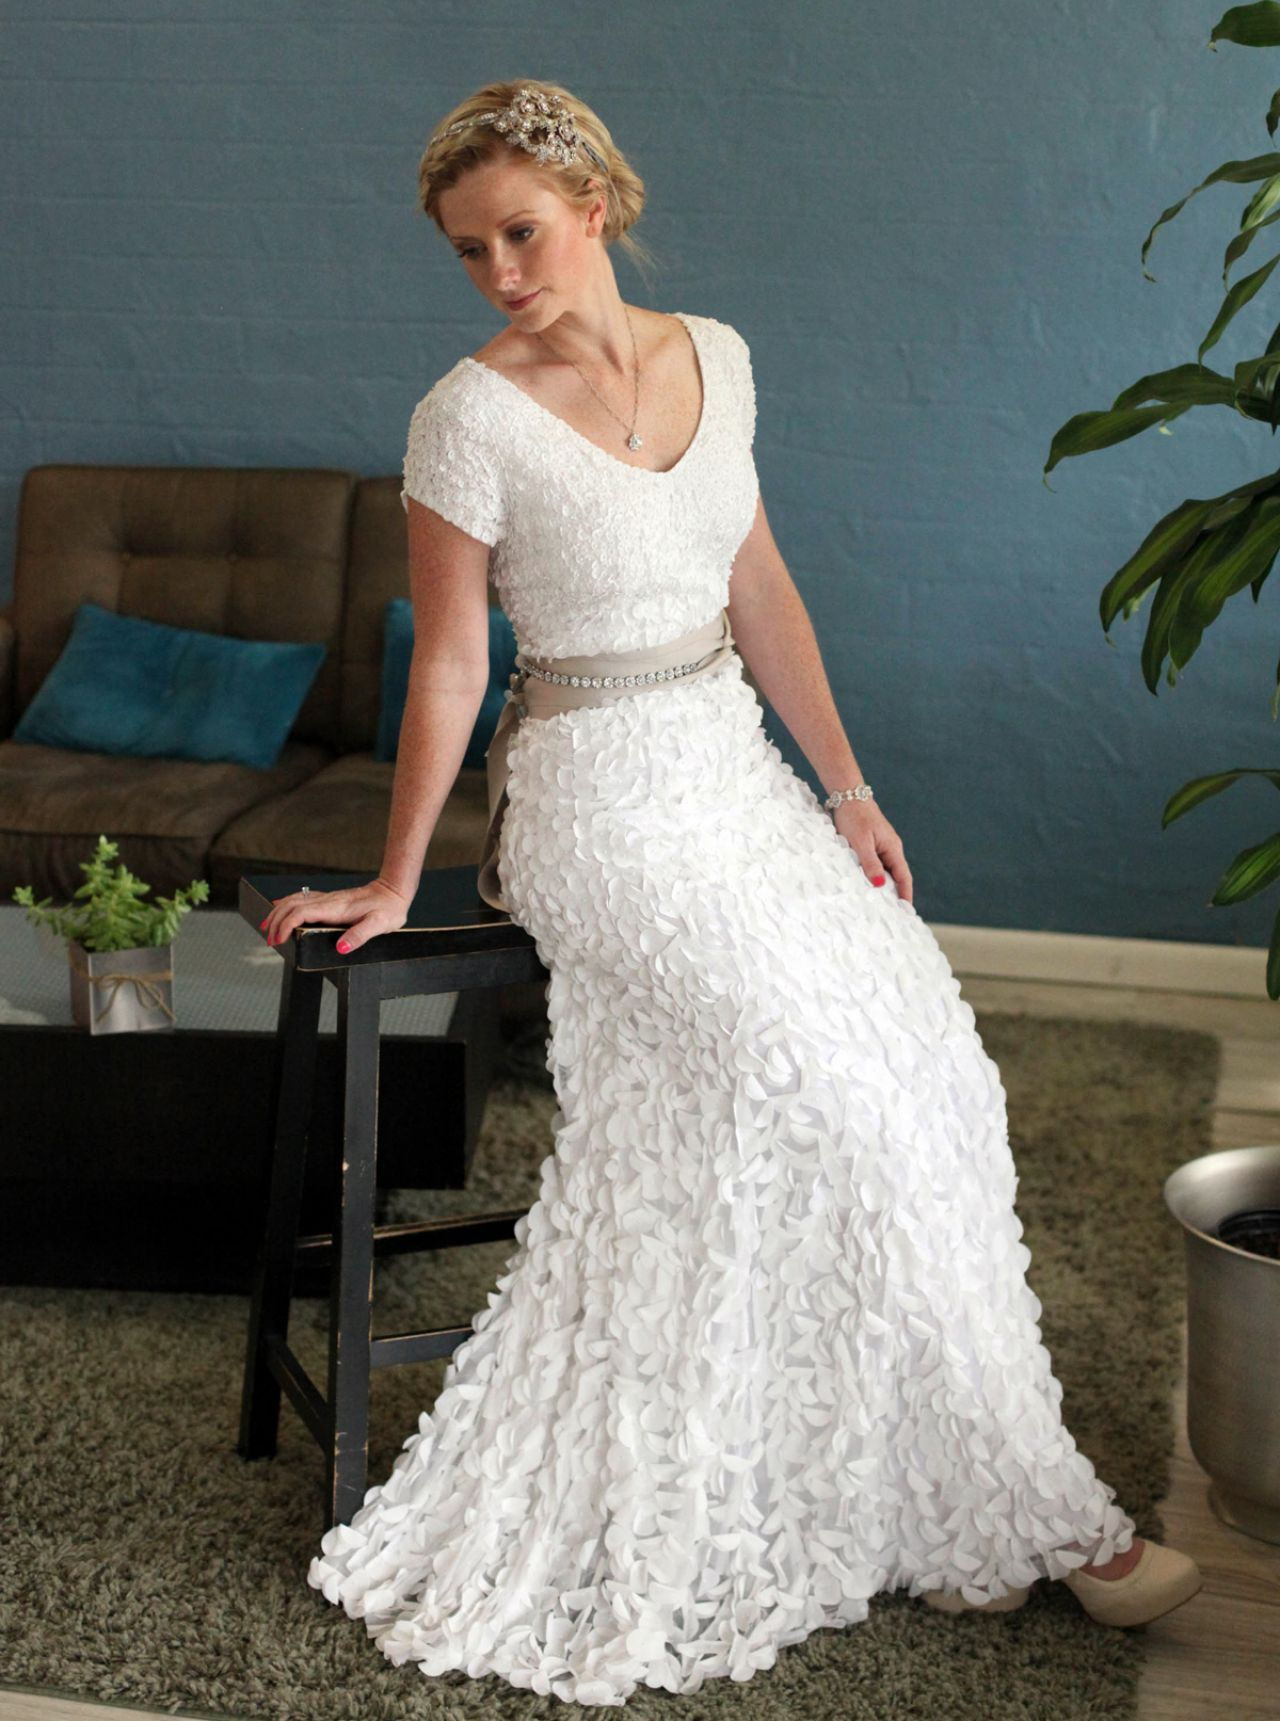 Wedding dresses for older brides second marriage pinteres for Older brides wedding dresses